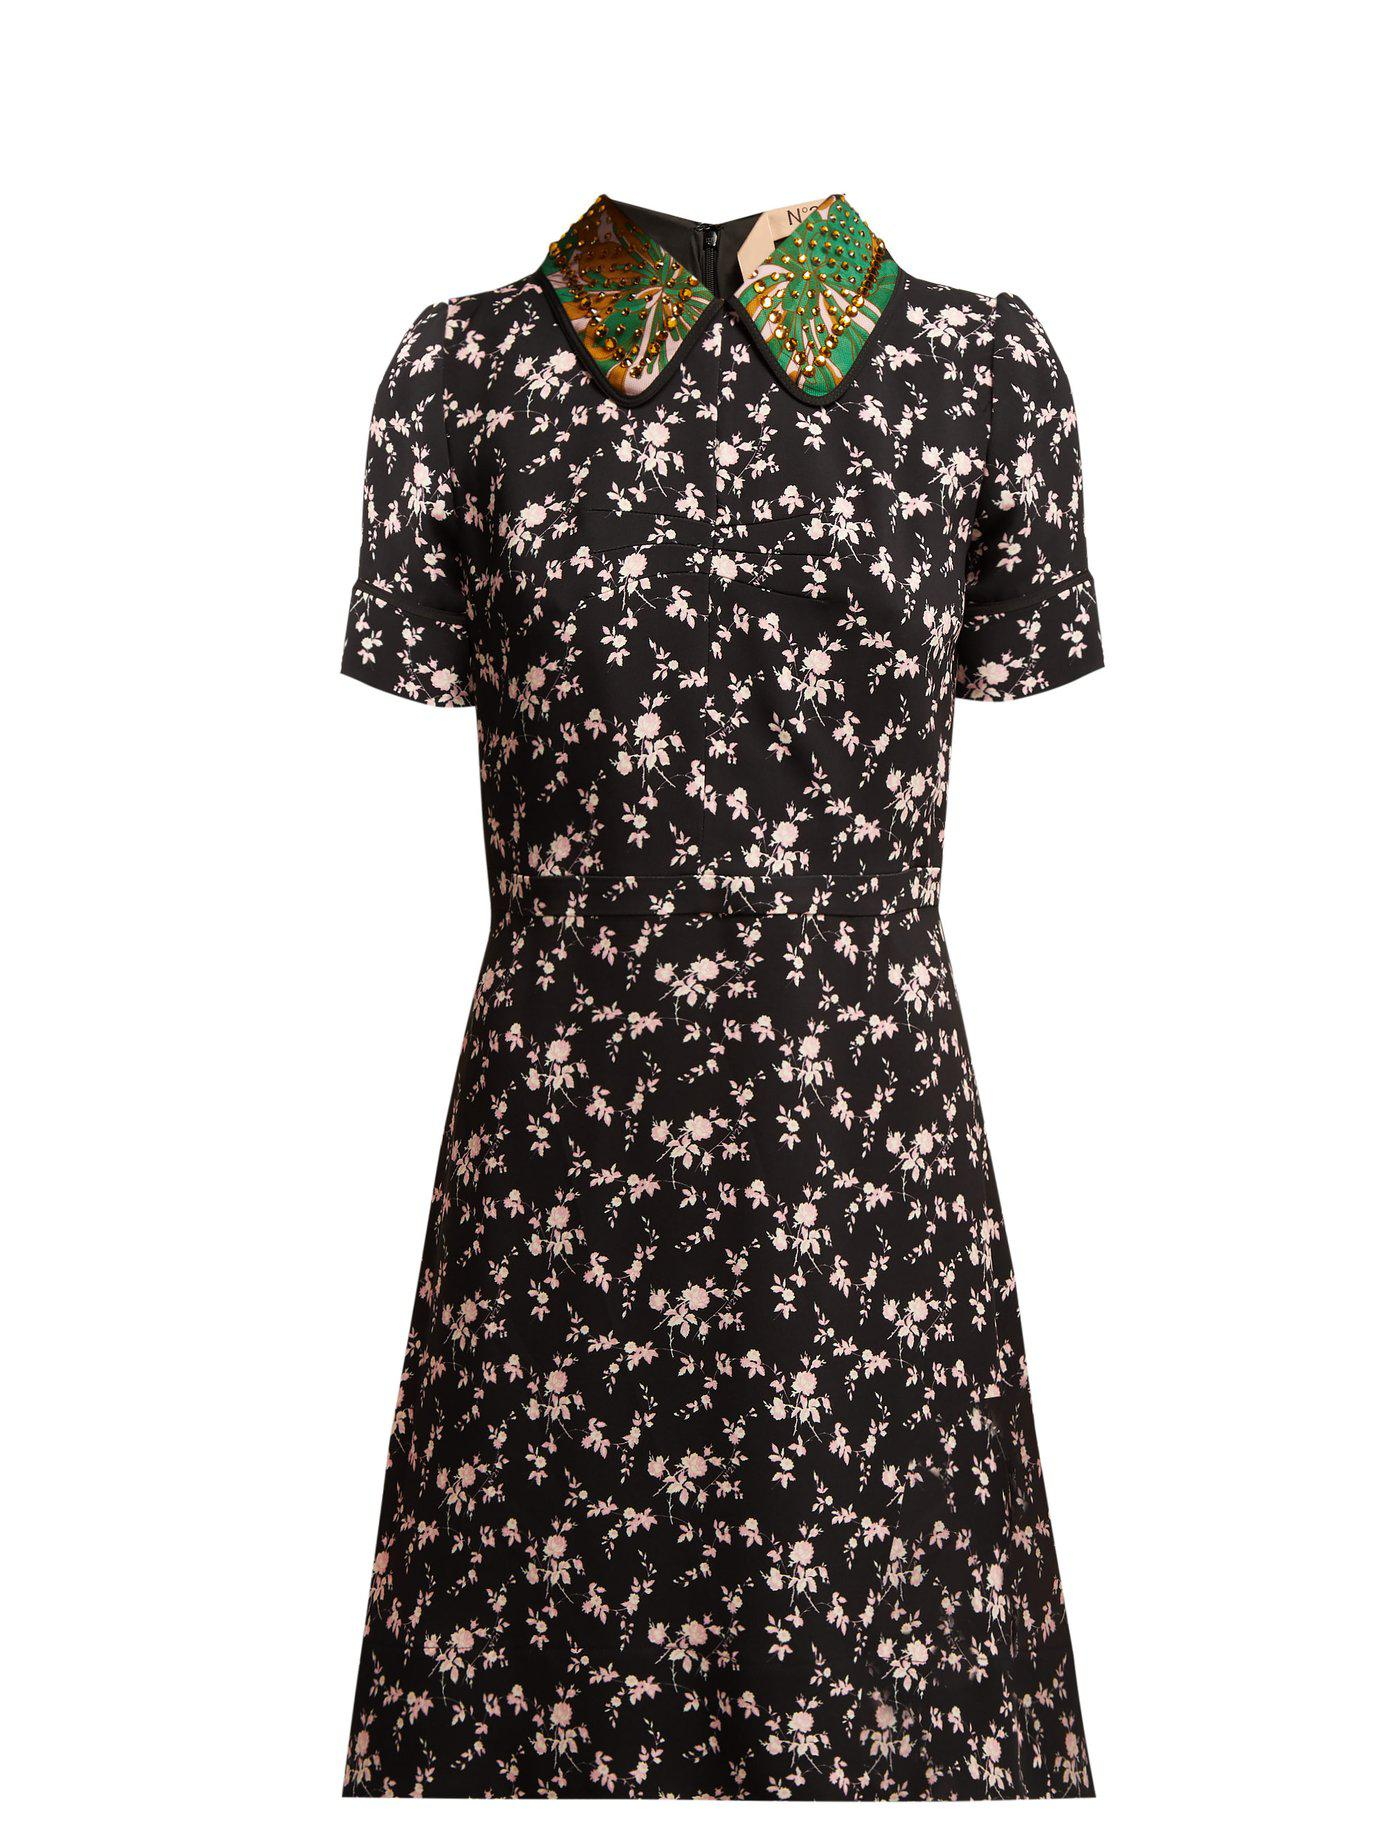 c052165da097 n21-black-multi-Stampa-Floral-Print-Dress.jpeg